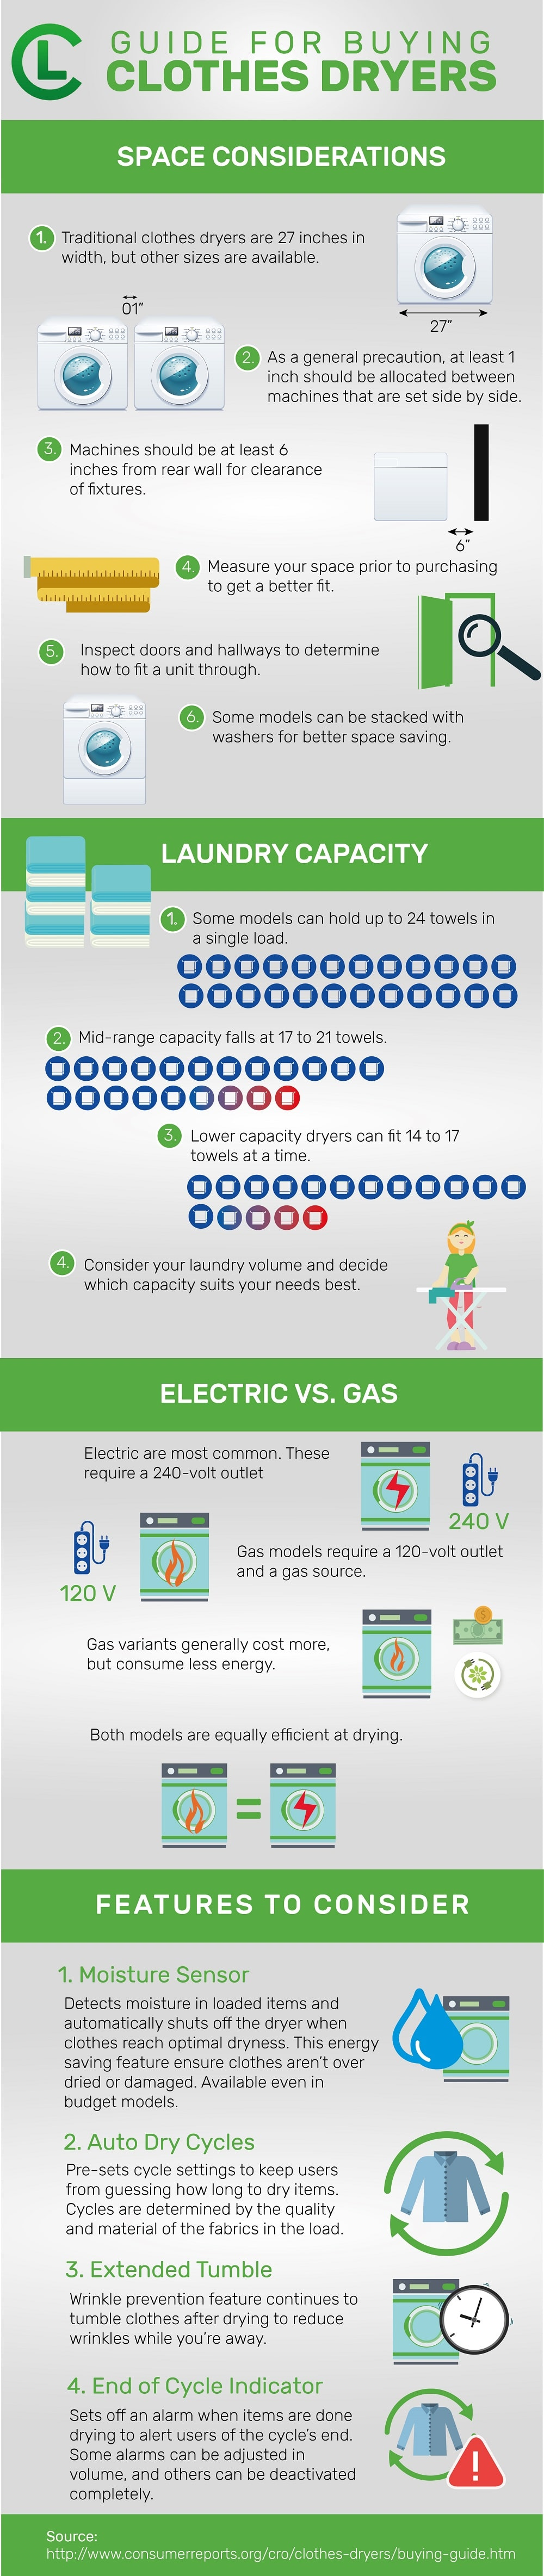 Guides For Buying Clothes Dryers Infographic